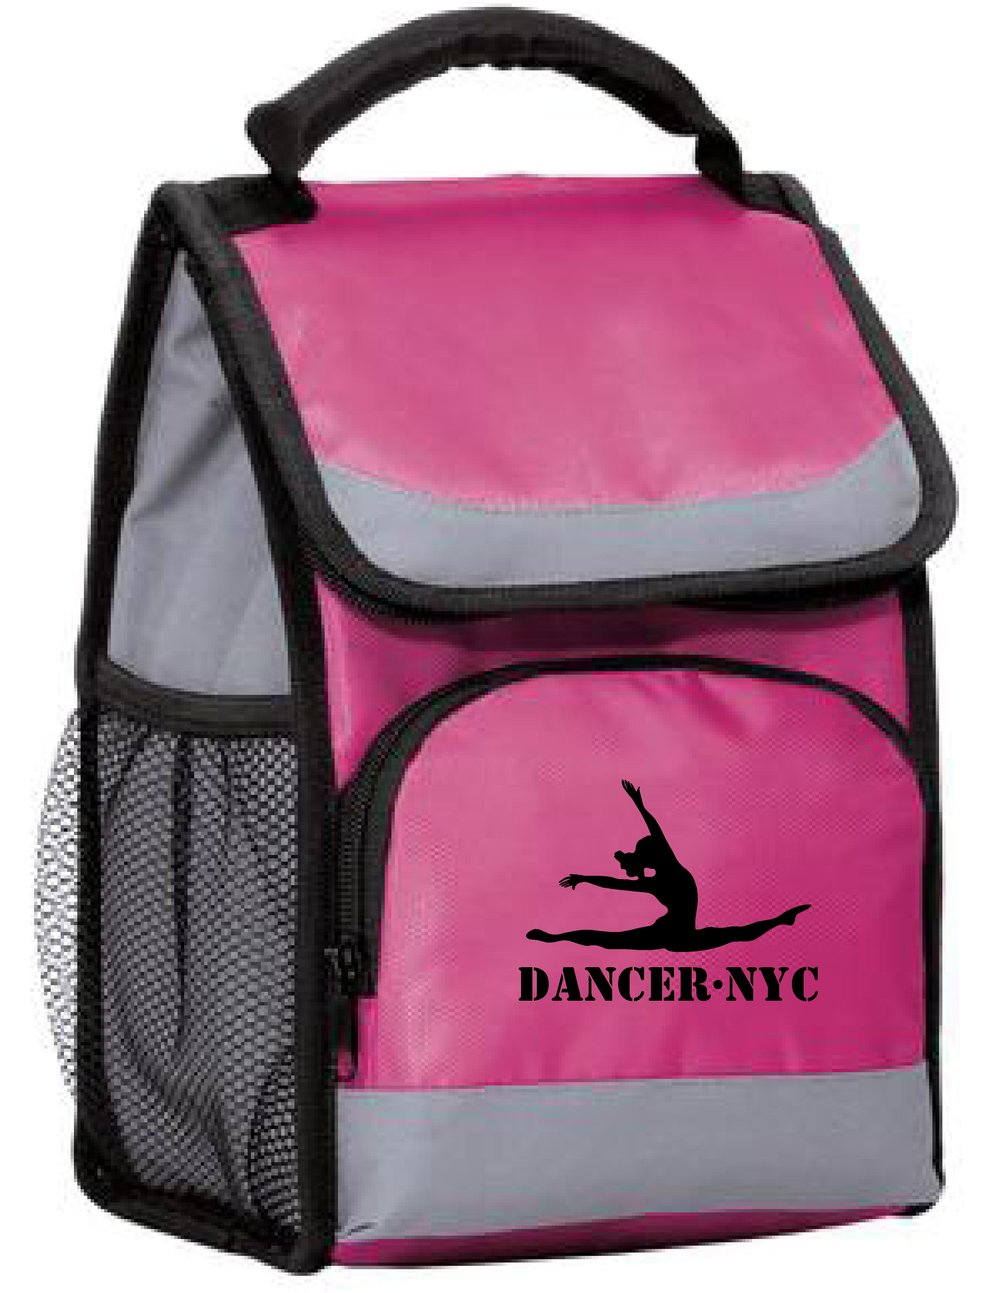 DANCER.NYC LUNCH BAG/MINI COOLER